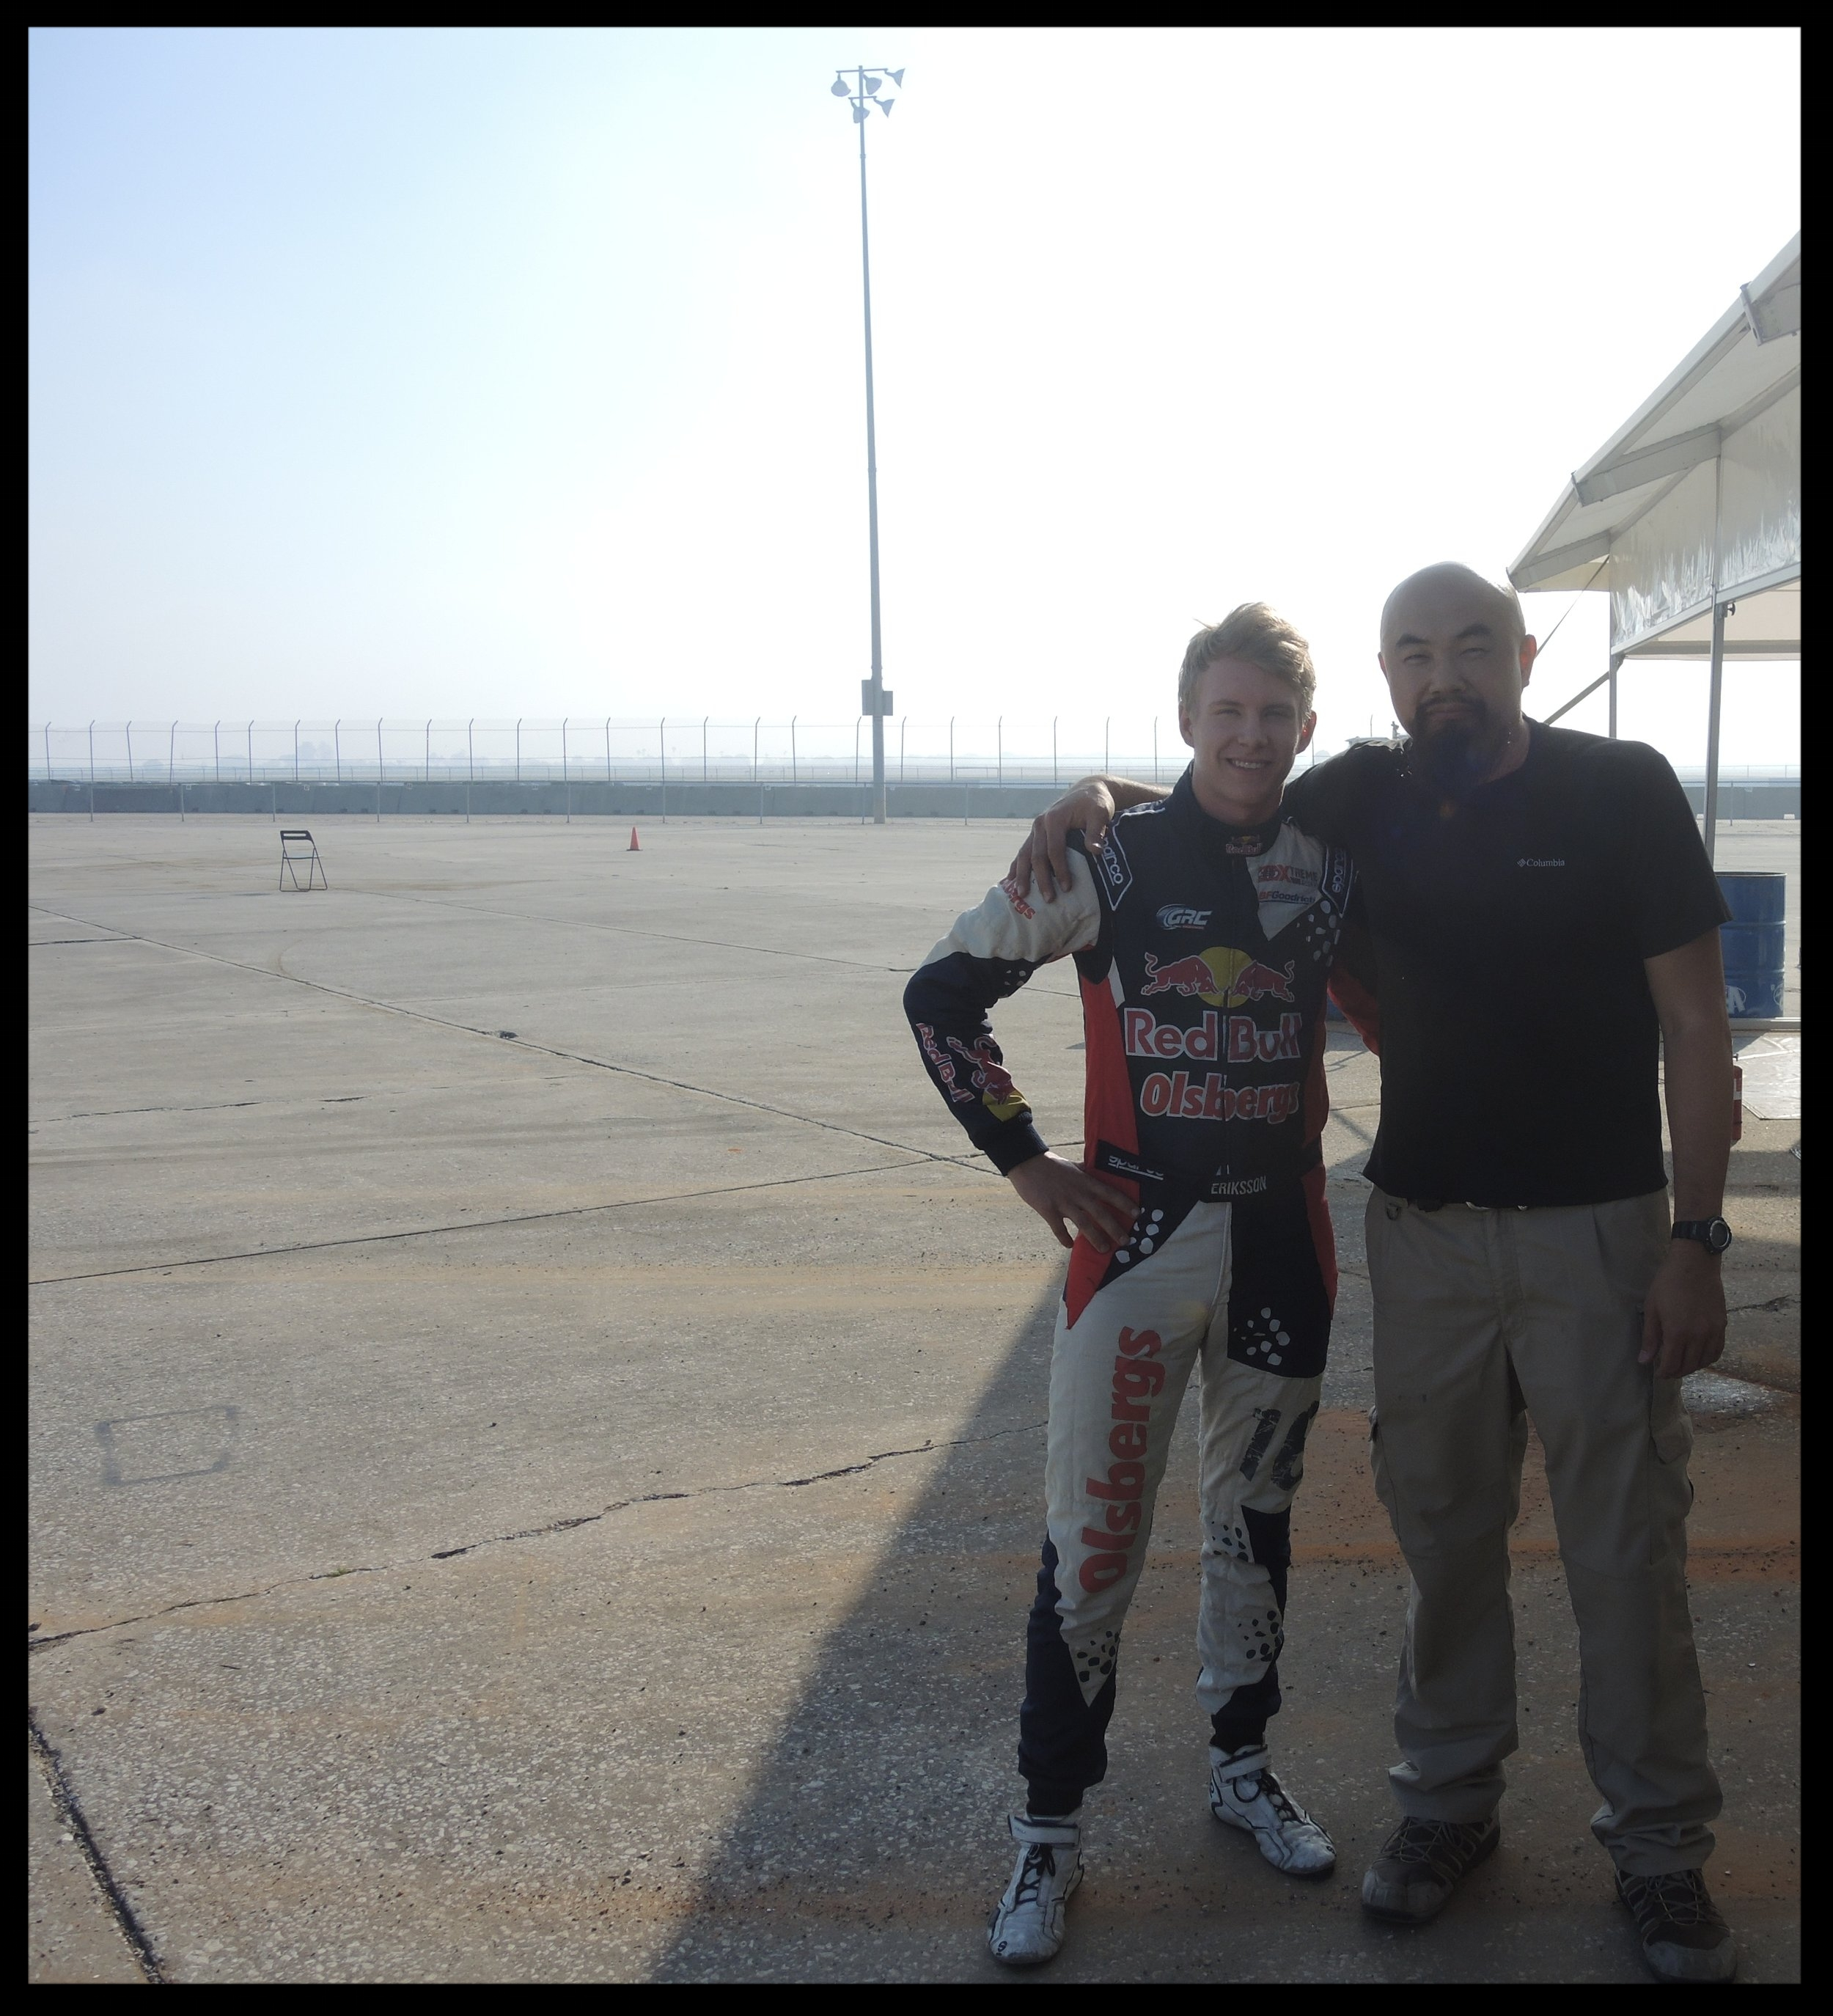 OLIVER ERIKKSON, THE 18 YEAR OLD RACE CAR DRIVER. HE DROVE FAAAAAST WITH THE OMSE HONDA CIVIC RALLY RACE CAR! THE LIGHTWEIGHT 600HP BEAST DOES 0-60 IN 1.9 SECONDS!!! THIS IS THE FASTEST CORNERING CAR I HAVE EVER SAT IN!!!